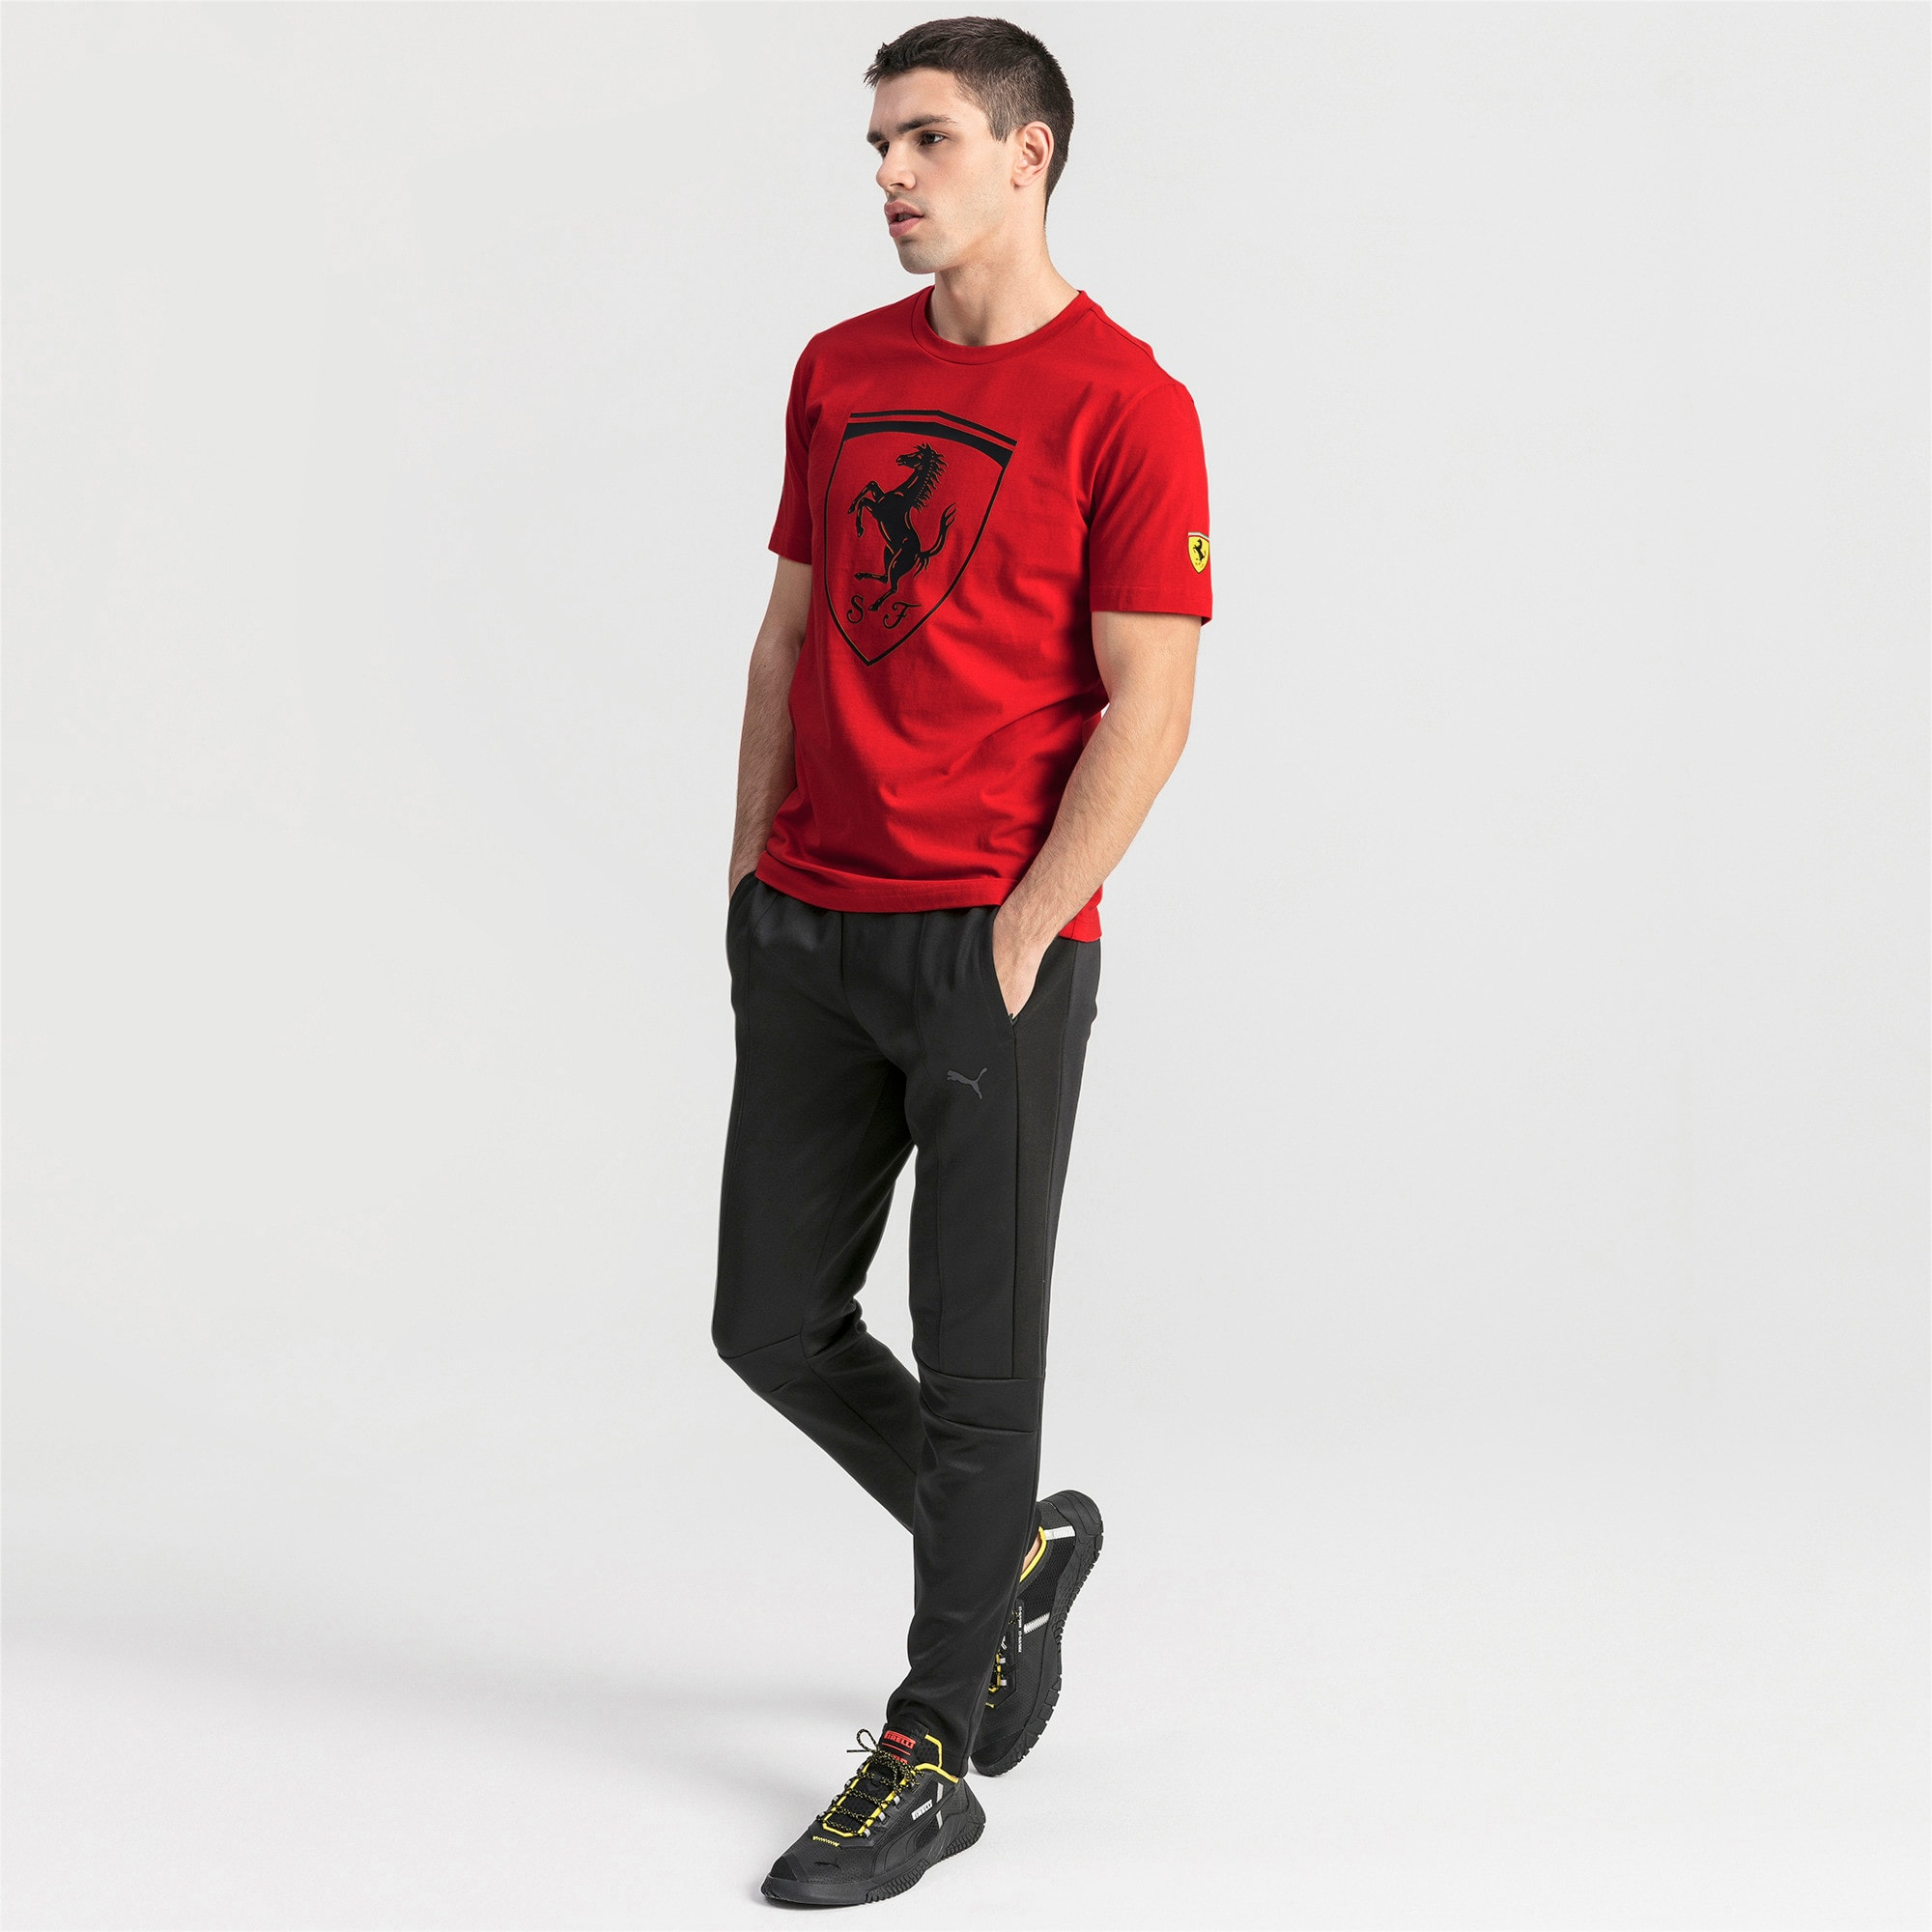 Thumbnail 3 of Ferrari T7 Herren Trainingshose, Puma Black, medium